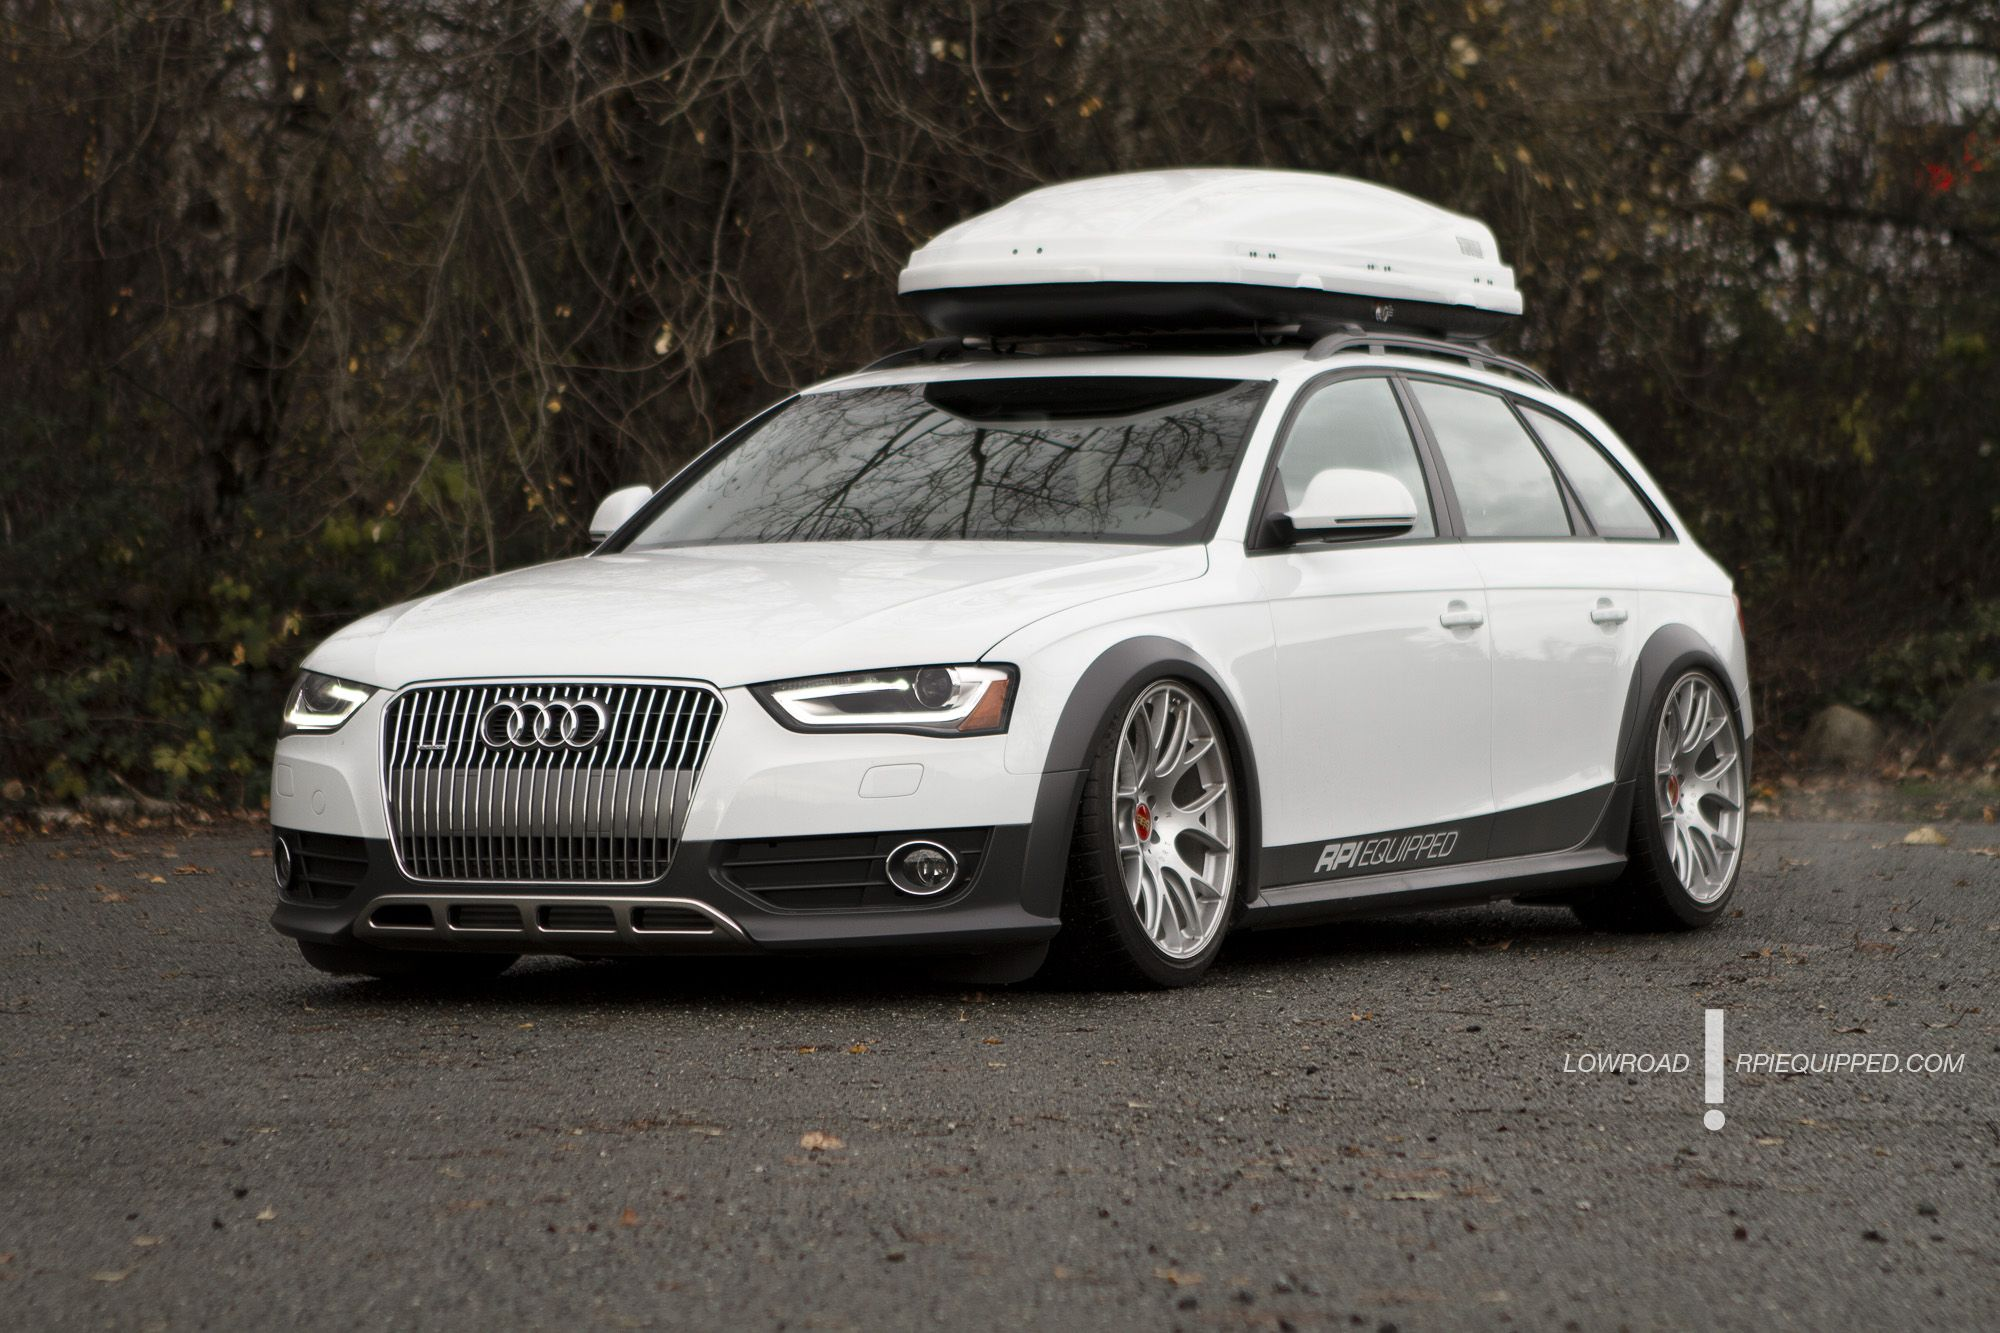 wagon articles news bloomberg audi allroad review quattro wagons station